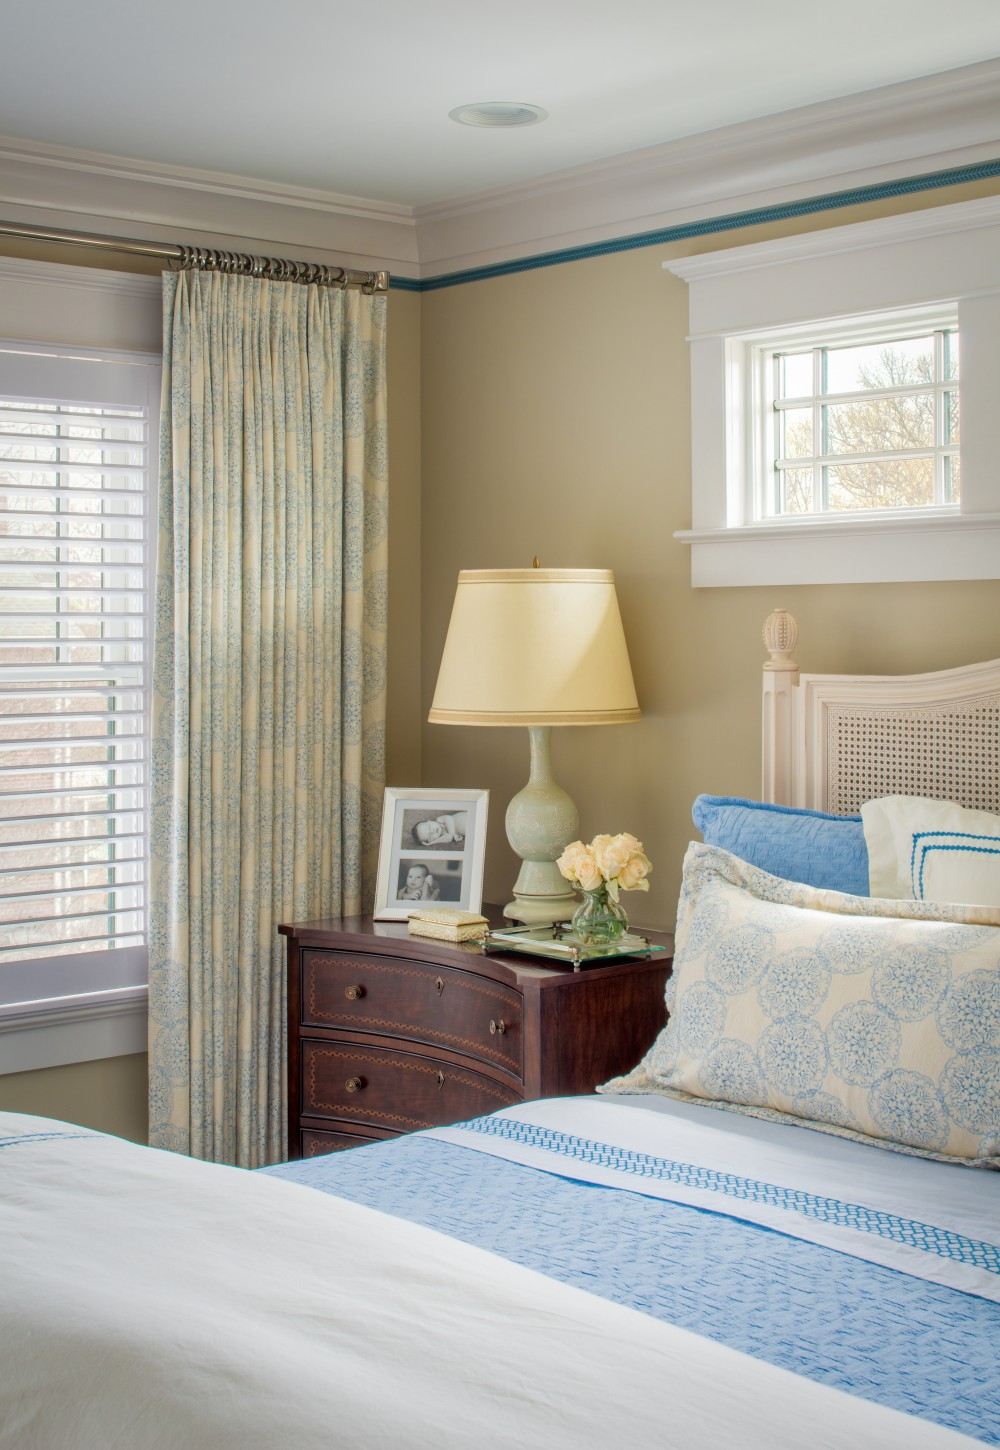 PalindromeDesign_FamilyCraft_serenemasterbedroom2.jpg